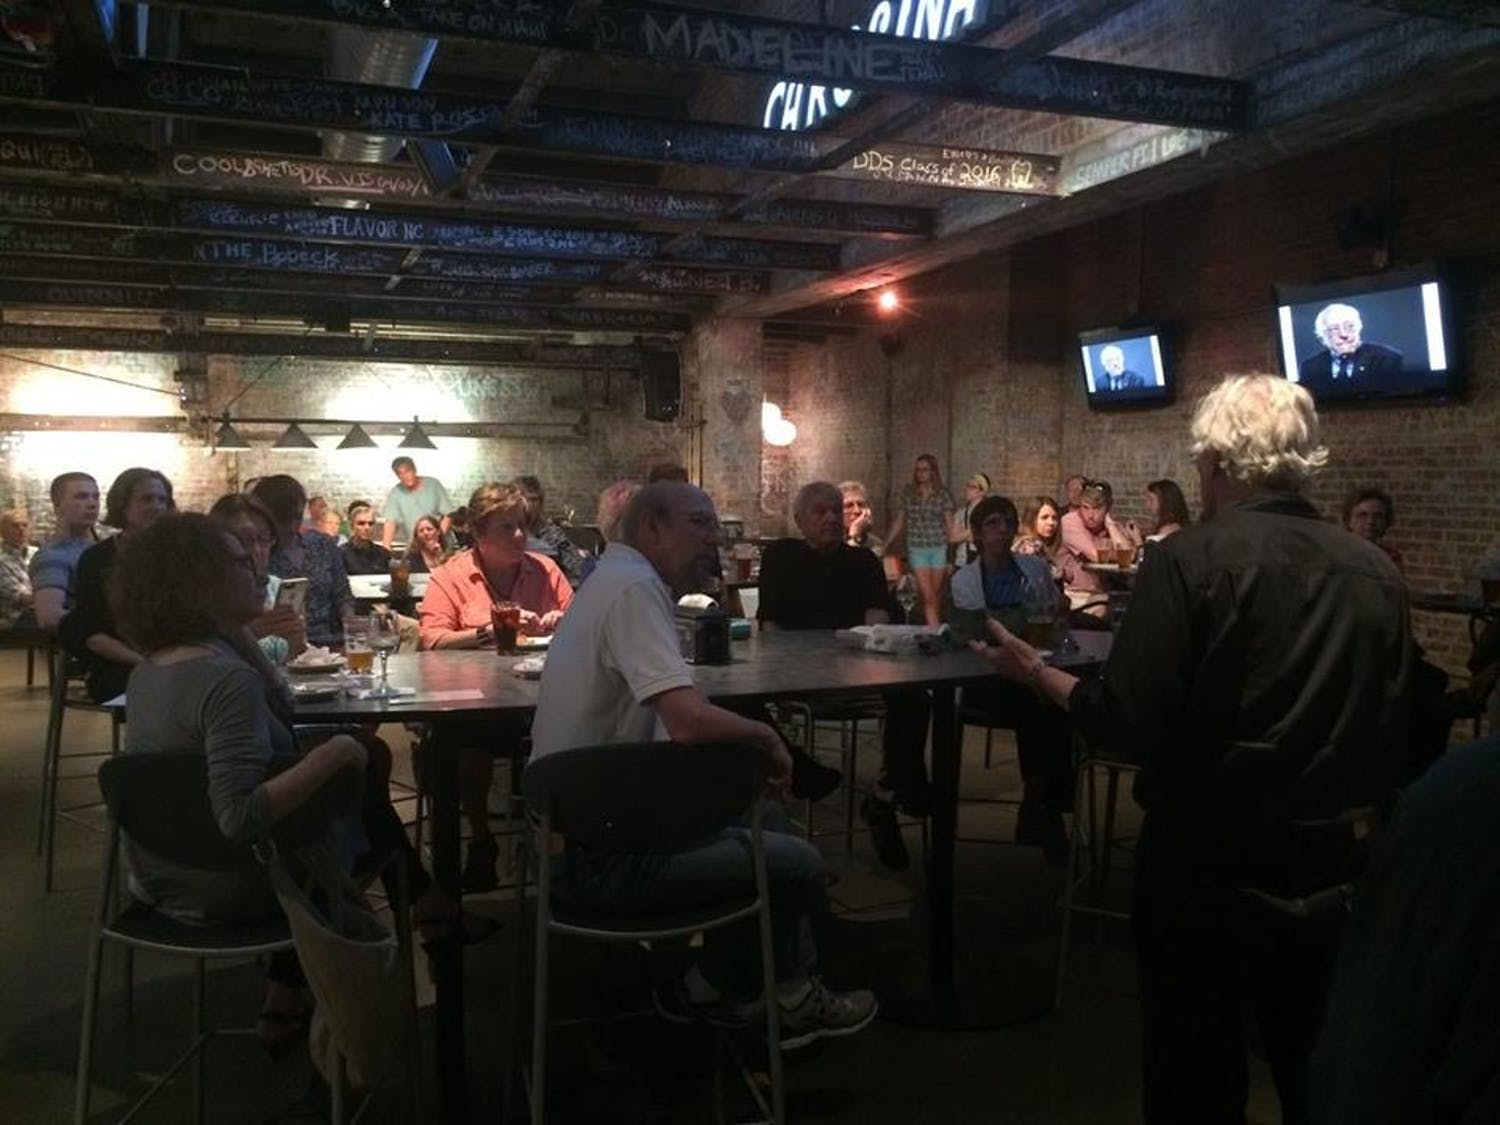 Lecture being given at Humanities Happy Hour at Top of the Hill's Back Bar